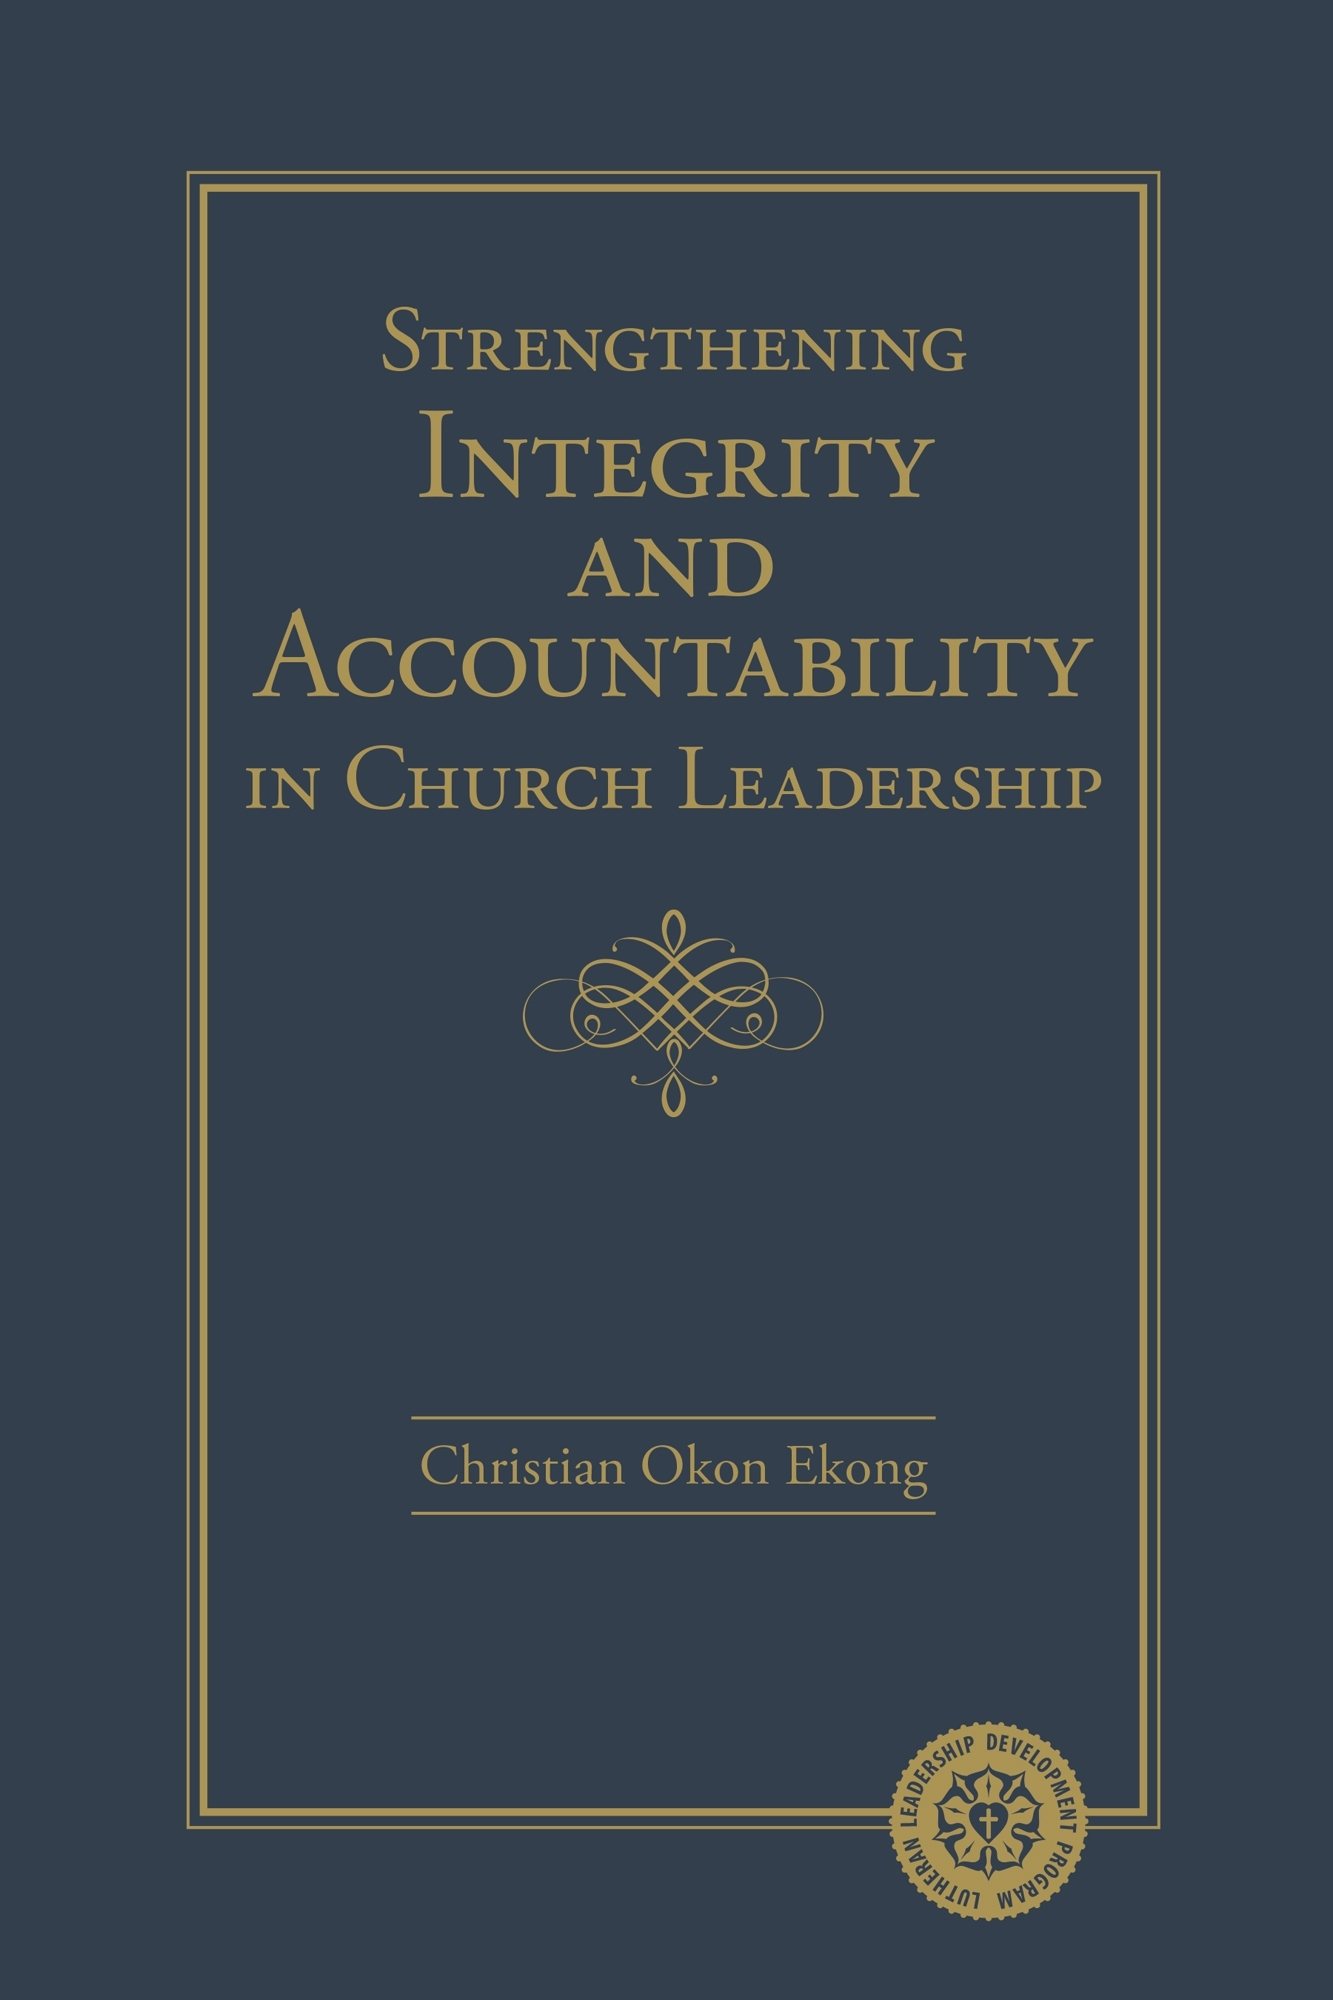 Strengthening Integrity And Accountability In Church Leadership